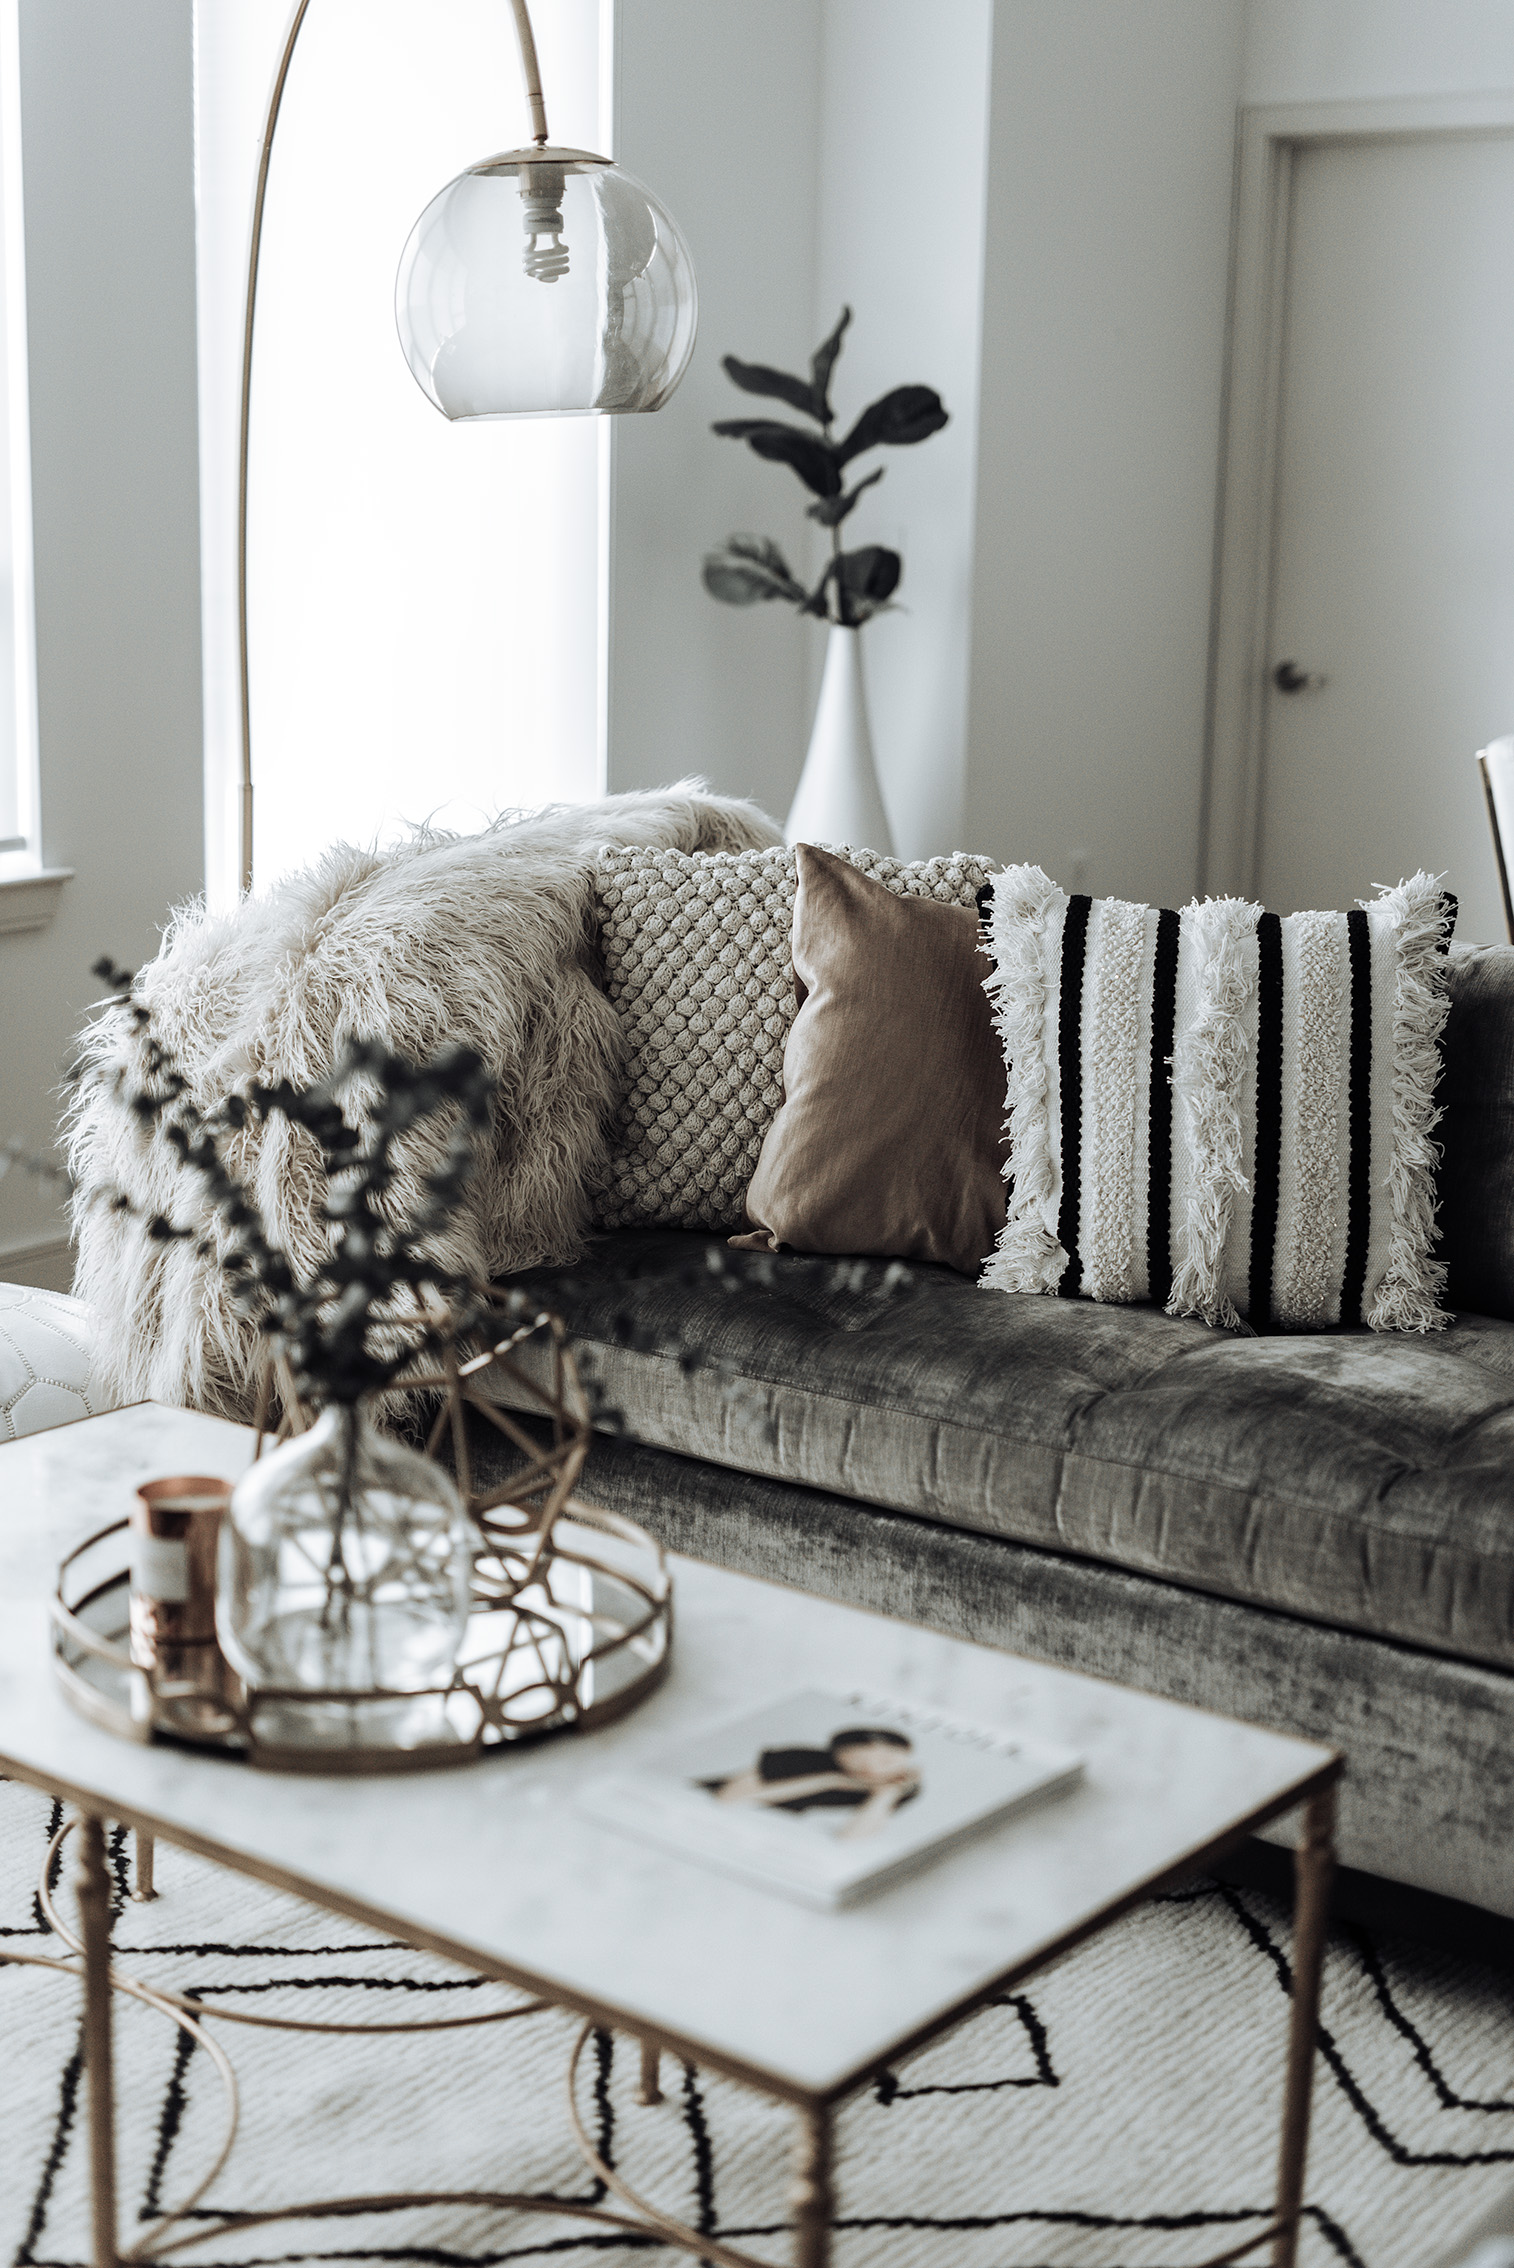 Click to shop | Family room update |Vega Moroccan Rug| Marble coffee table (similar) | White Leather Pouf Ottoman (on sale!) | Textured Indra Pillow | Glass Vase | Blush Cotton Luster Velvet Pillow | | Marisa Throw Blanket |Pompom Pillow | Overarching Lamp